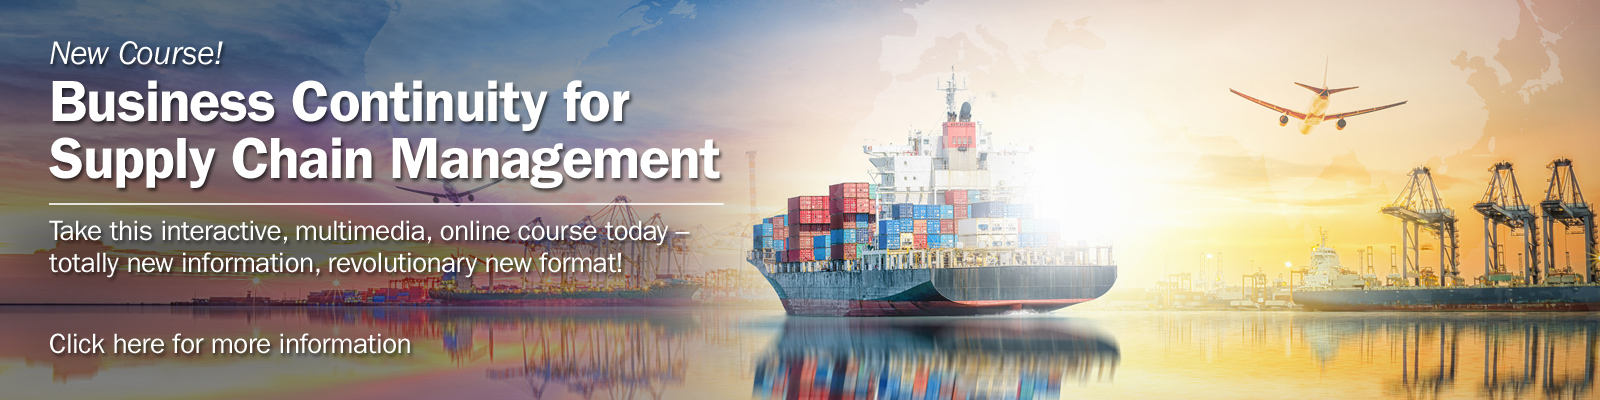 Business Continuity for Supply Chain Management